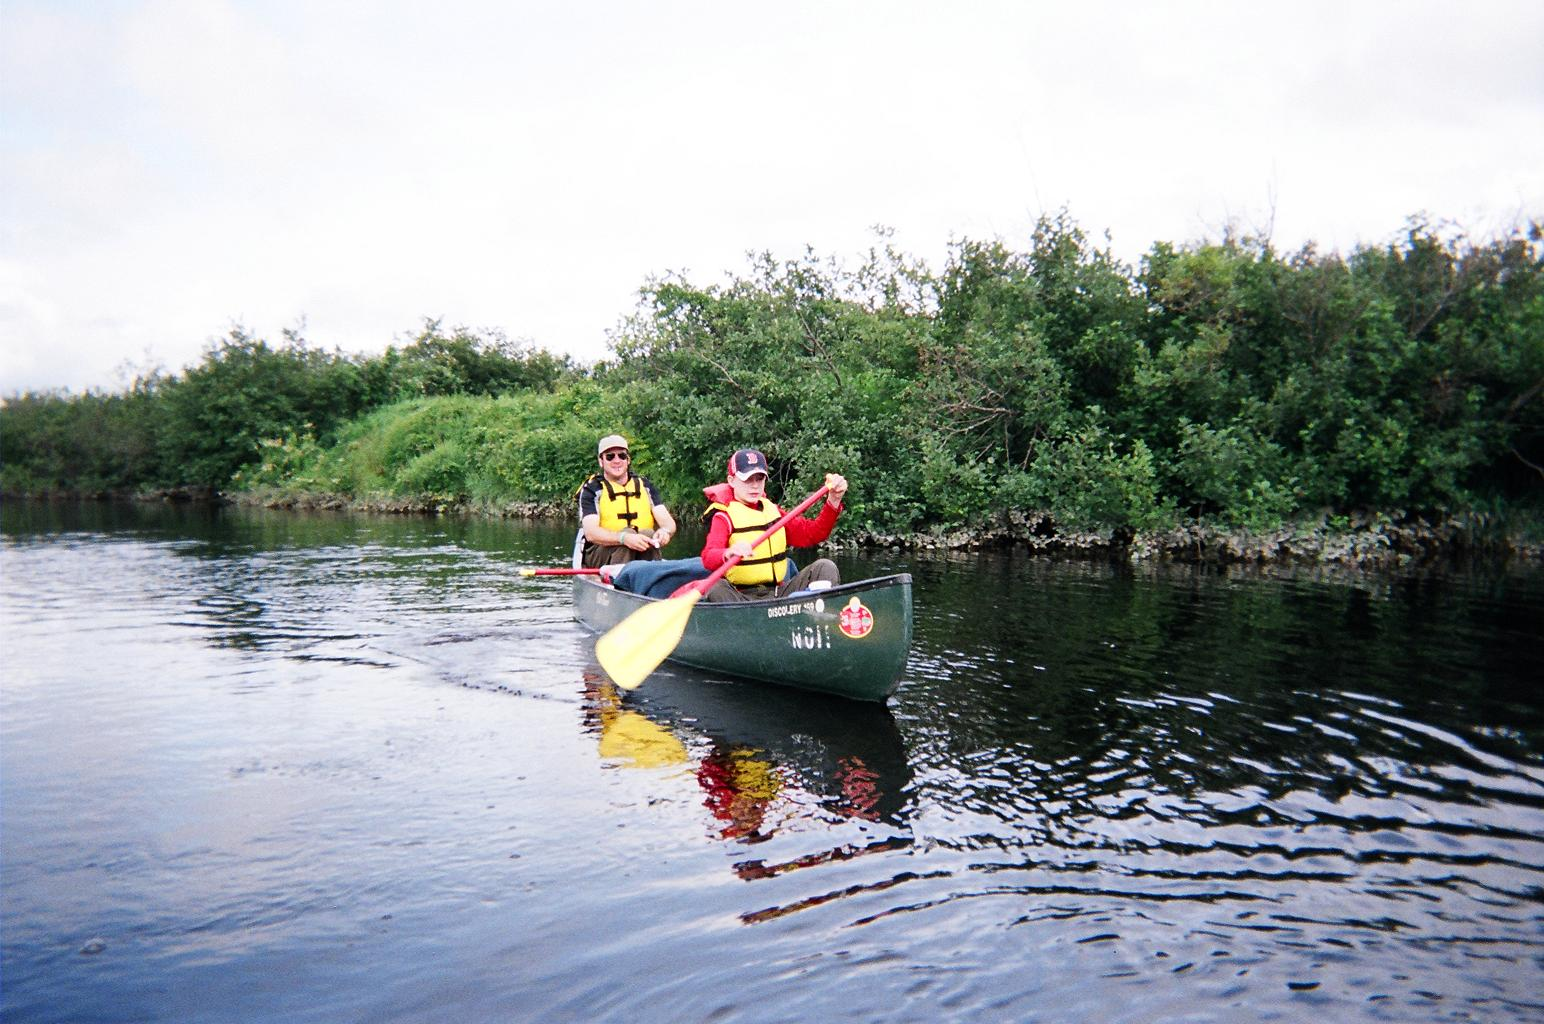 Canoeing on the Moose Bow River